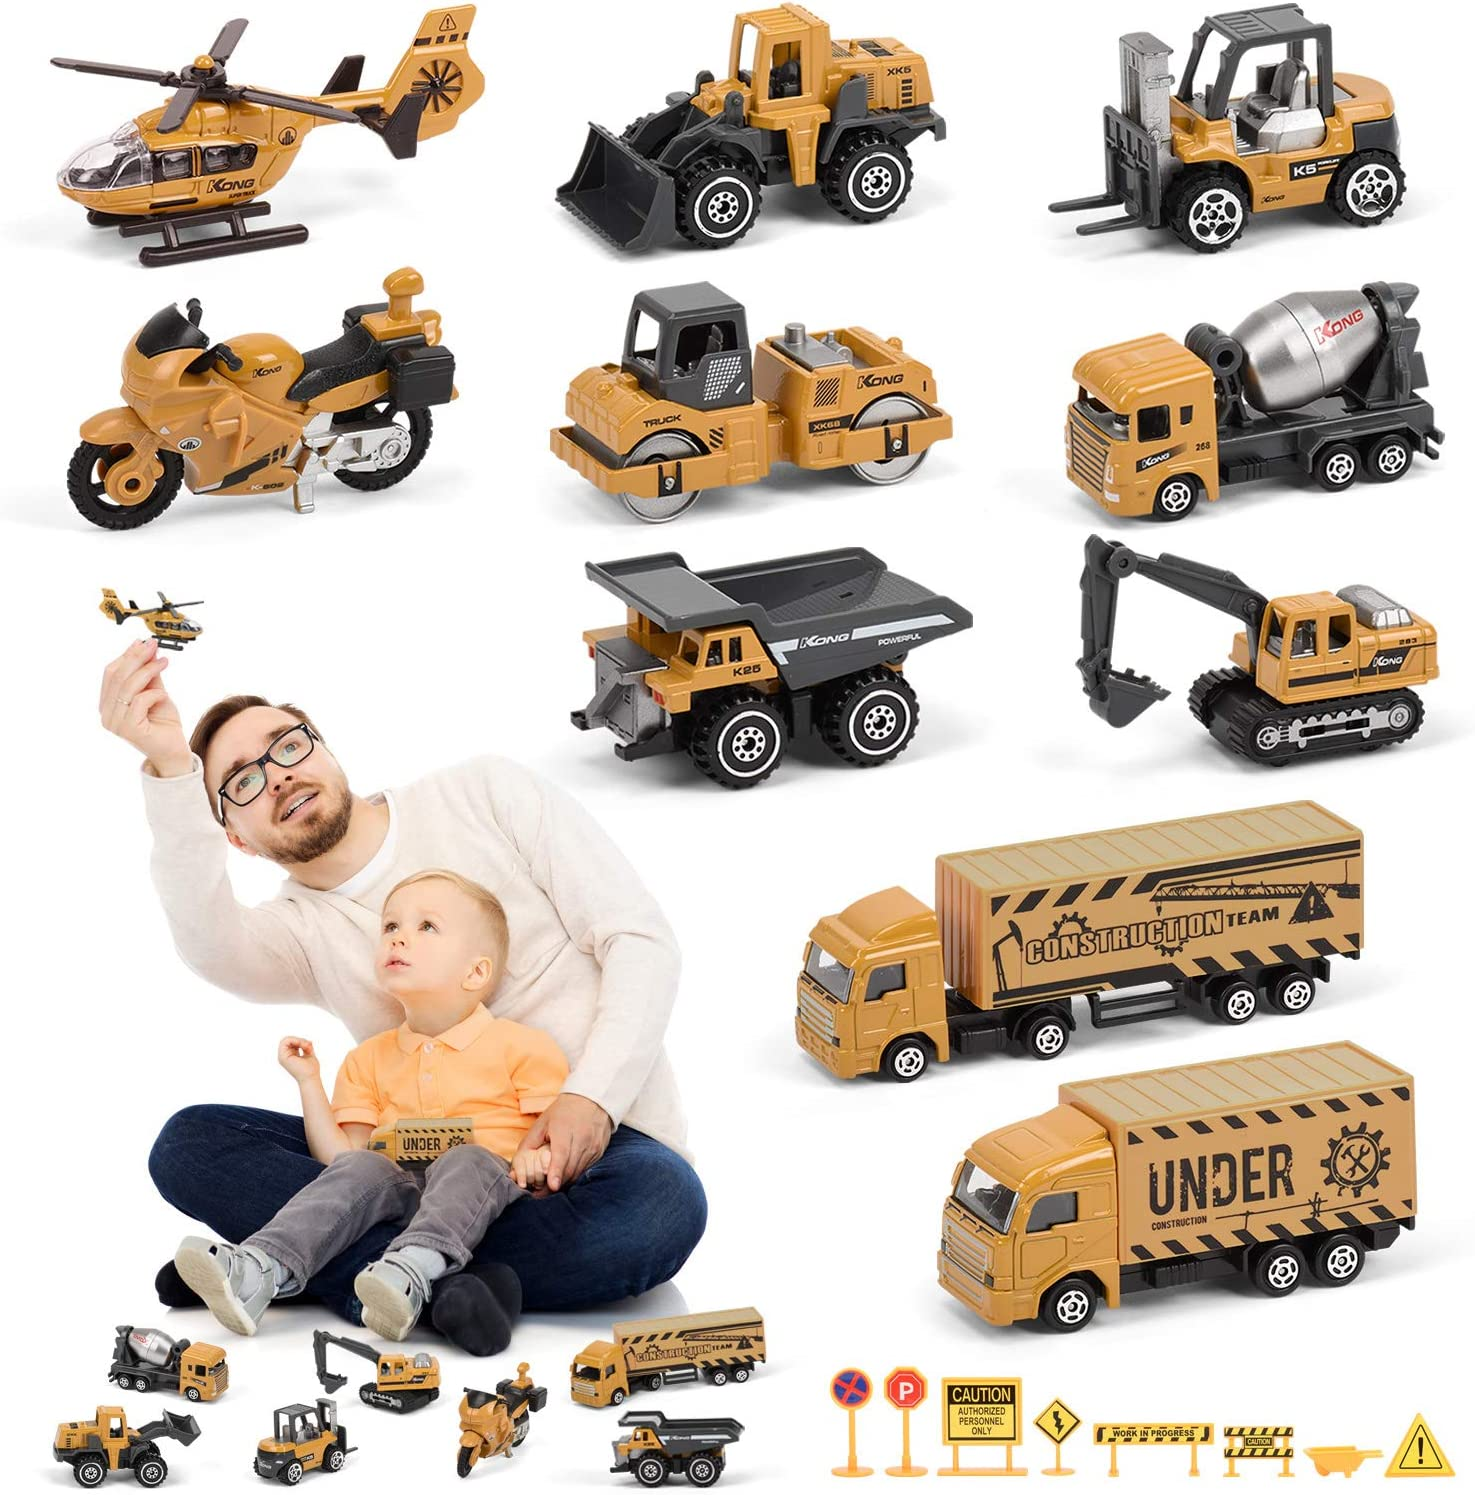 Small Construction Vehicle Toys, 10 Diecast Construction Vehicles for Kids with 8 Road Sign, Excavator Digger Bulldozer Dump Helicopter Motorcycle Toy Construction Trucks for Boys Toddlers Gifts